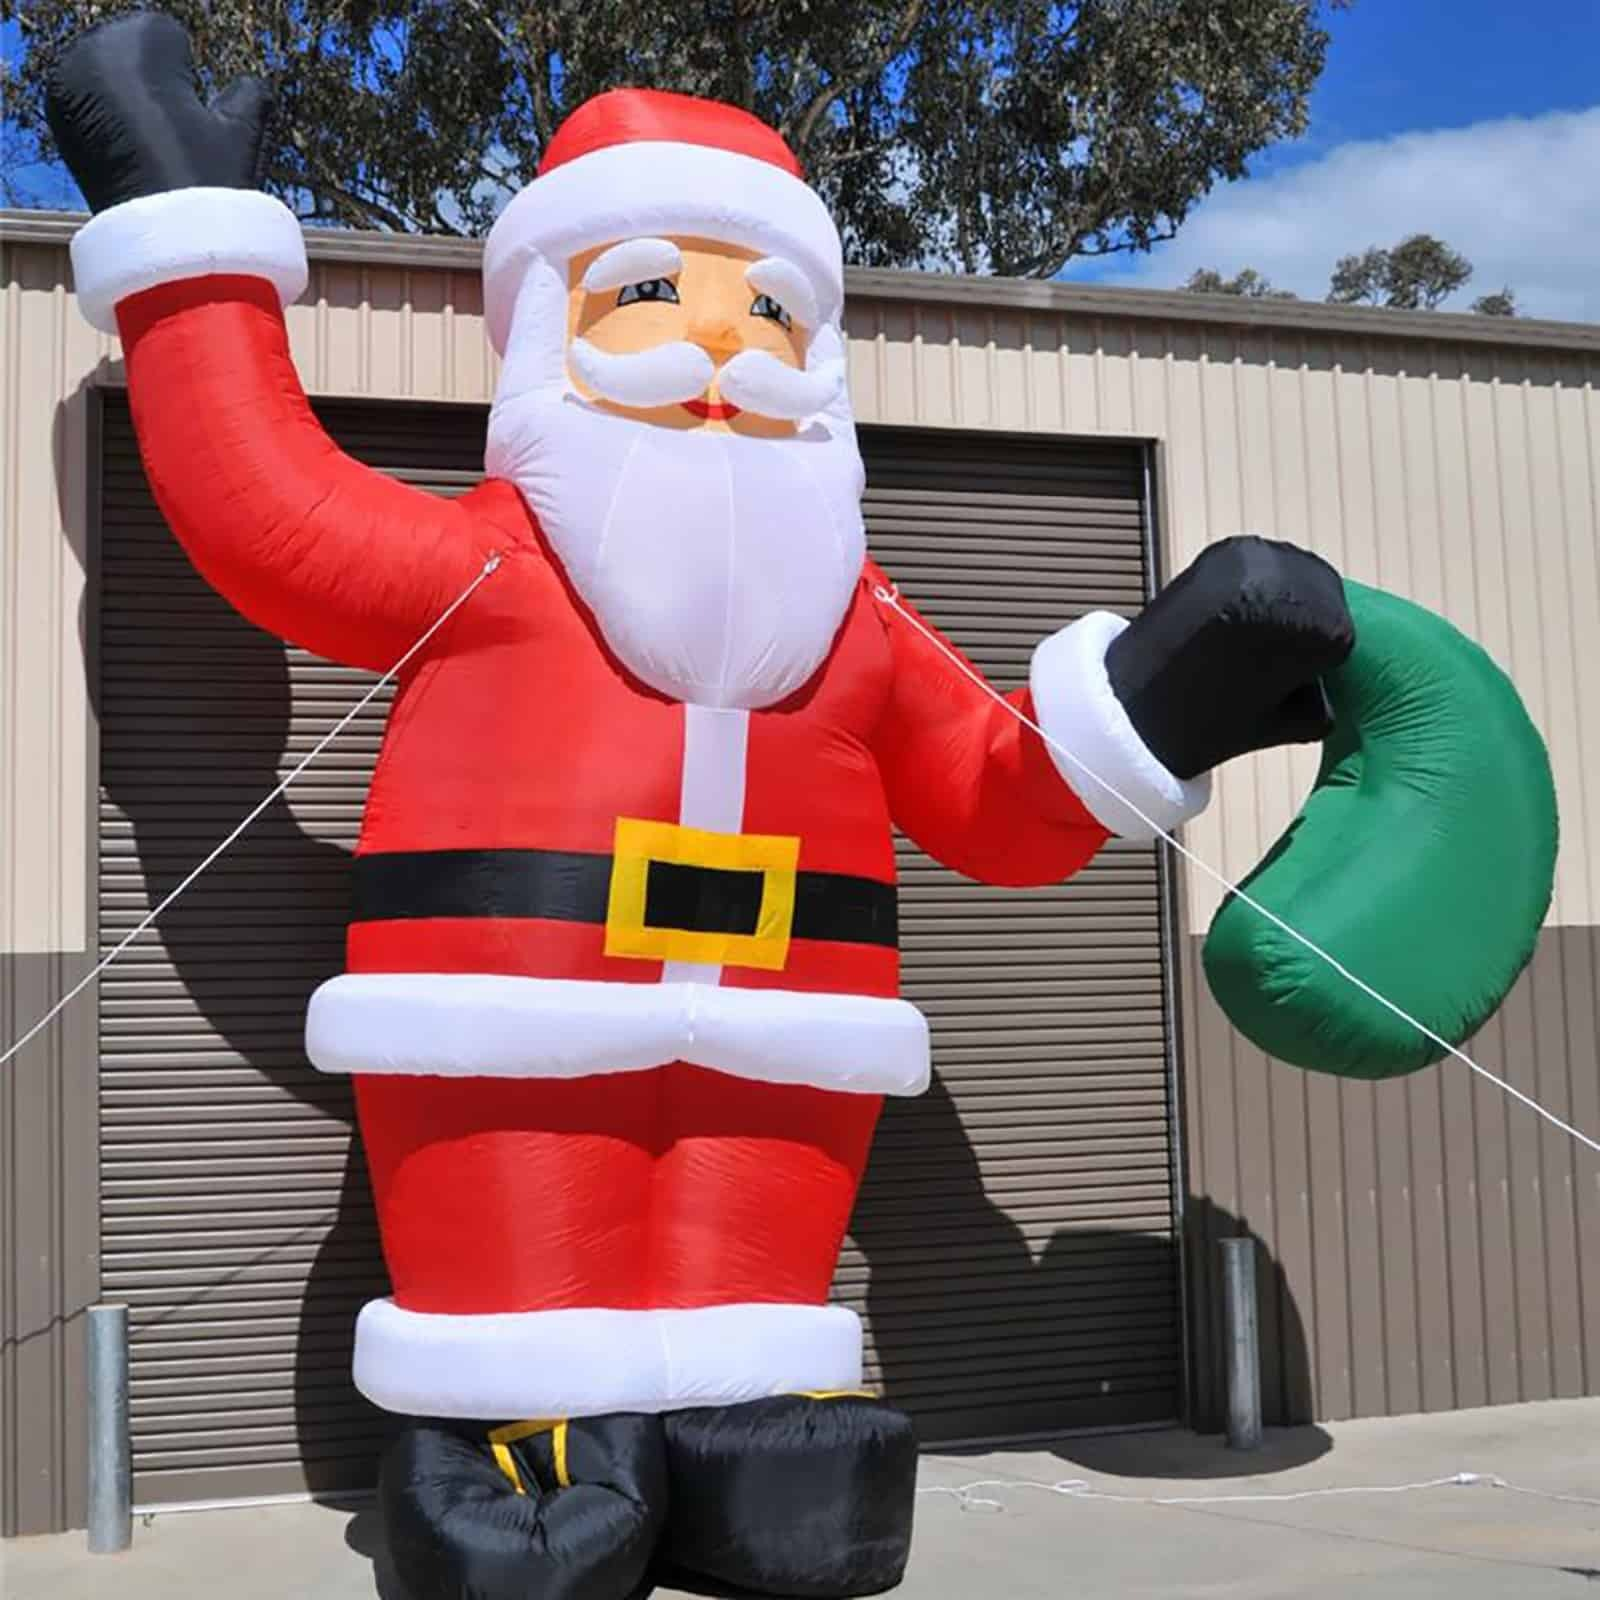 25cm Large Outdoor Commercial Christmas Tree Bauble: 6M Giant Christmas Santa Claus Inflatable Large Outdoor